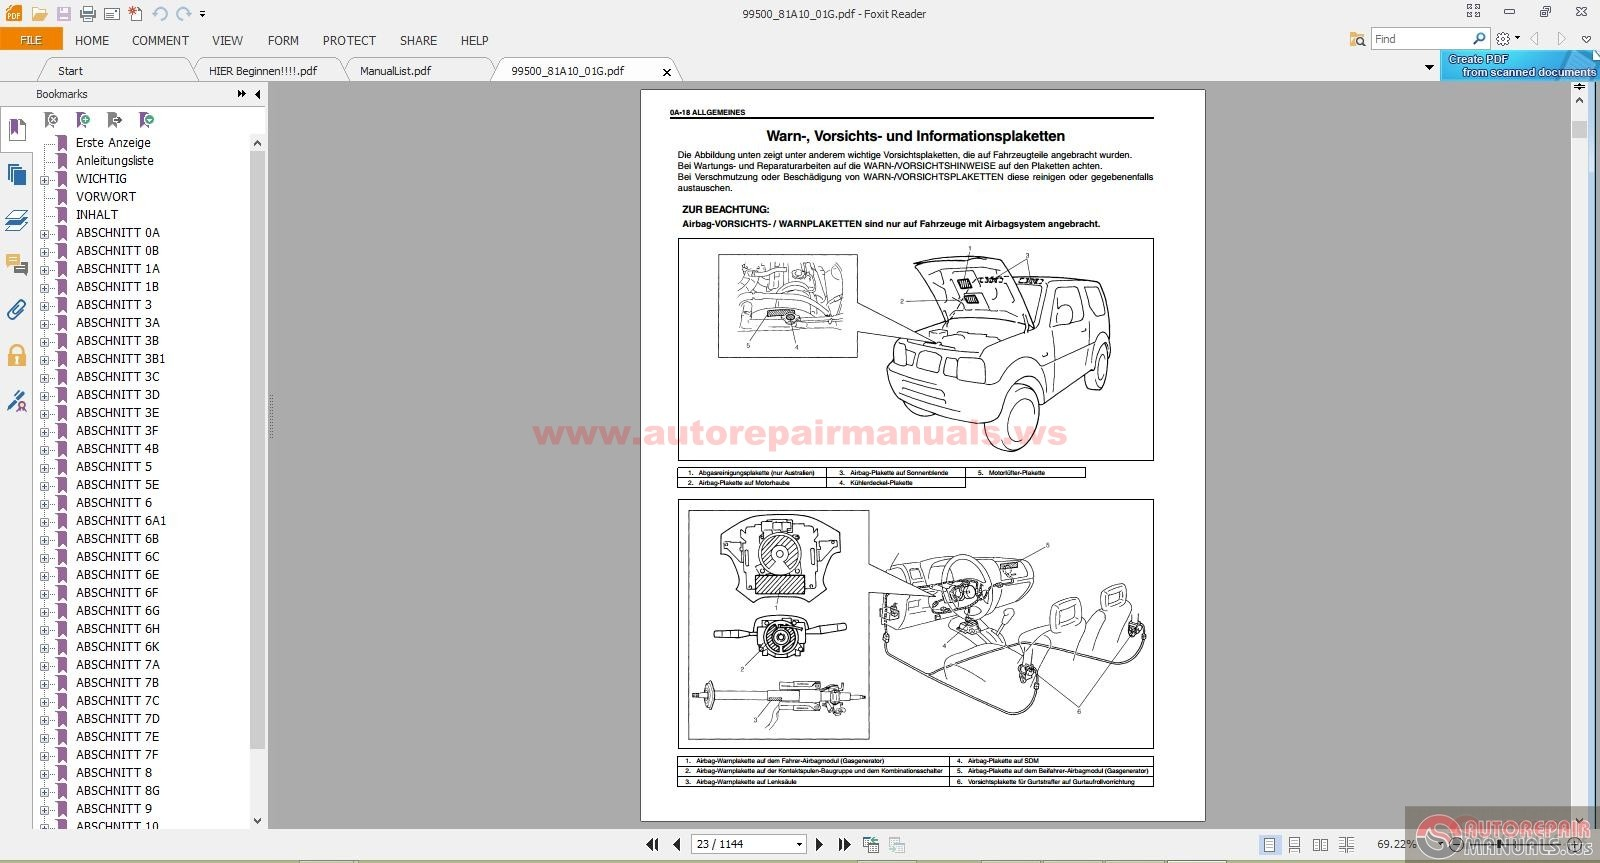 2007 Suzuki Xl7 Wiring Diagram Circuit And Hub Jimny Sn413 Sn415d 1996 Tis Auto Repair Fuse Boxes